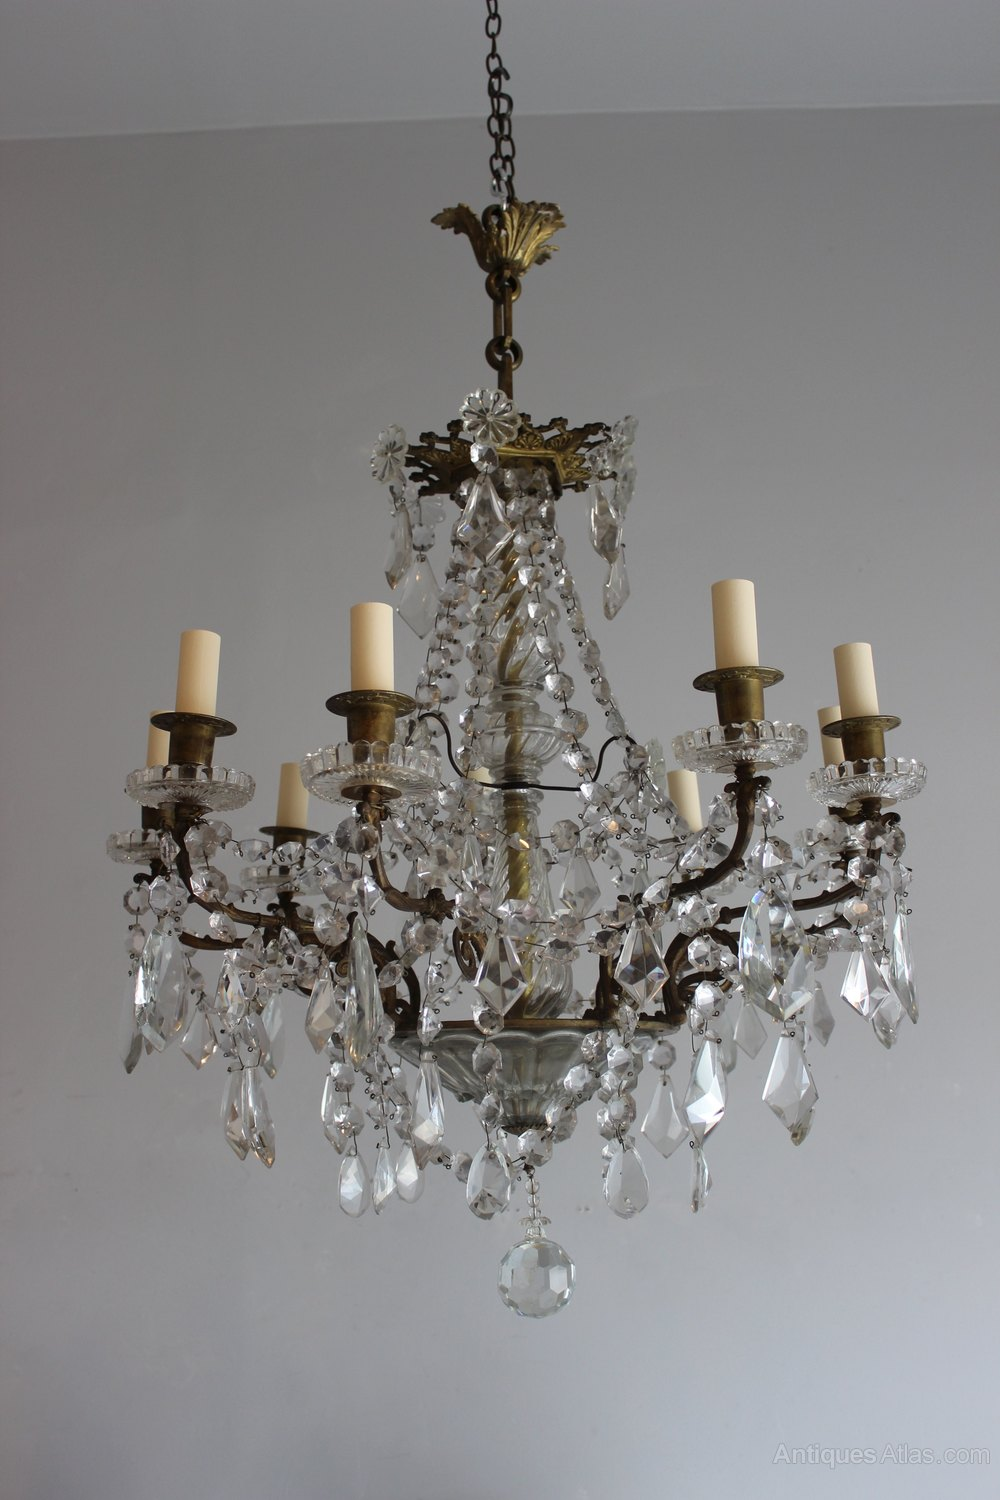 Cut Glass French Antique Chandelier Lighting Chandeliers